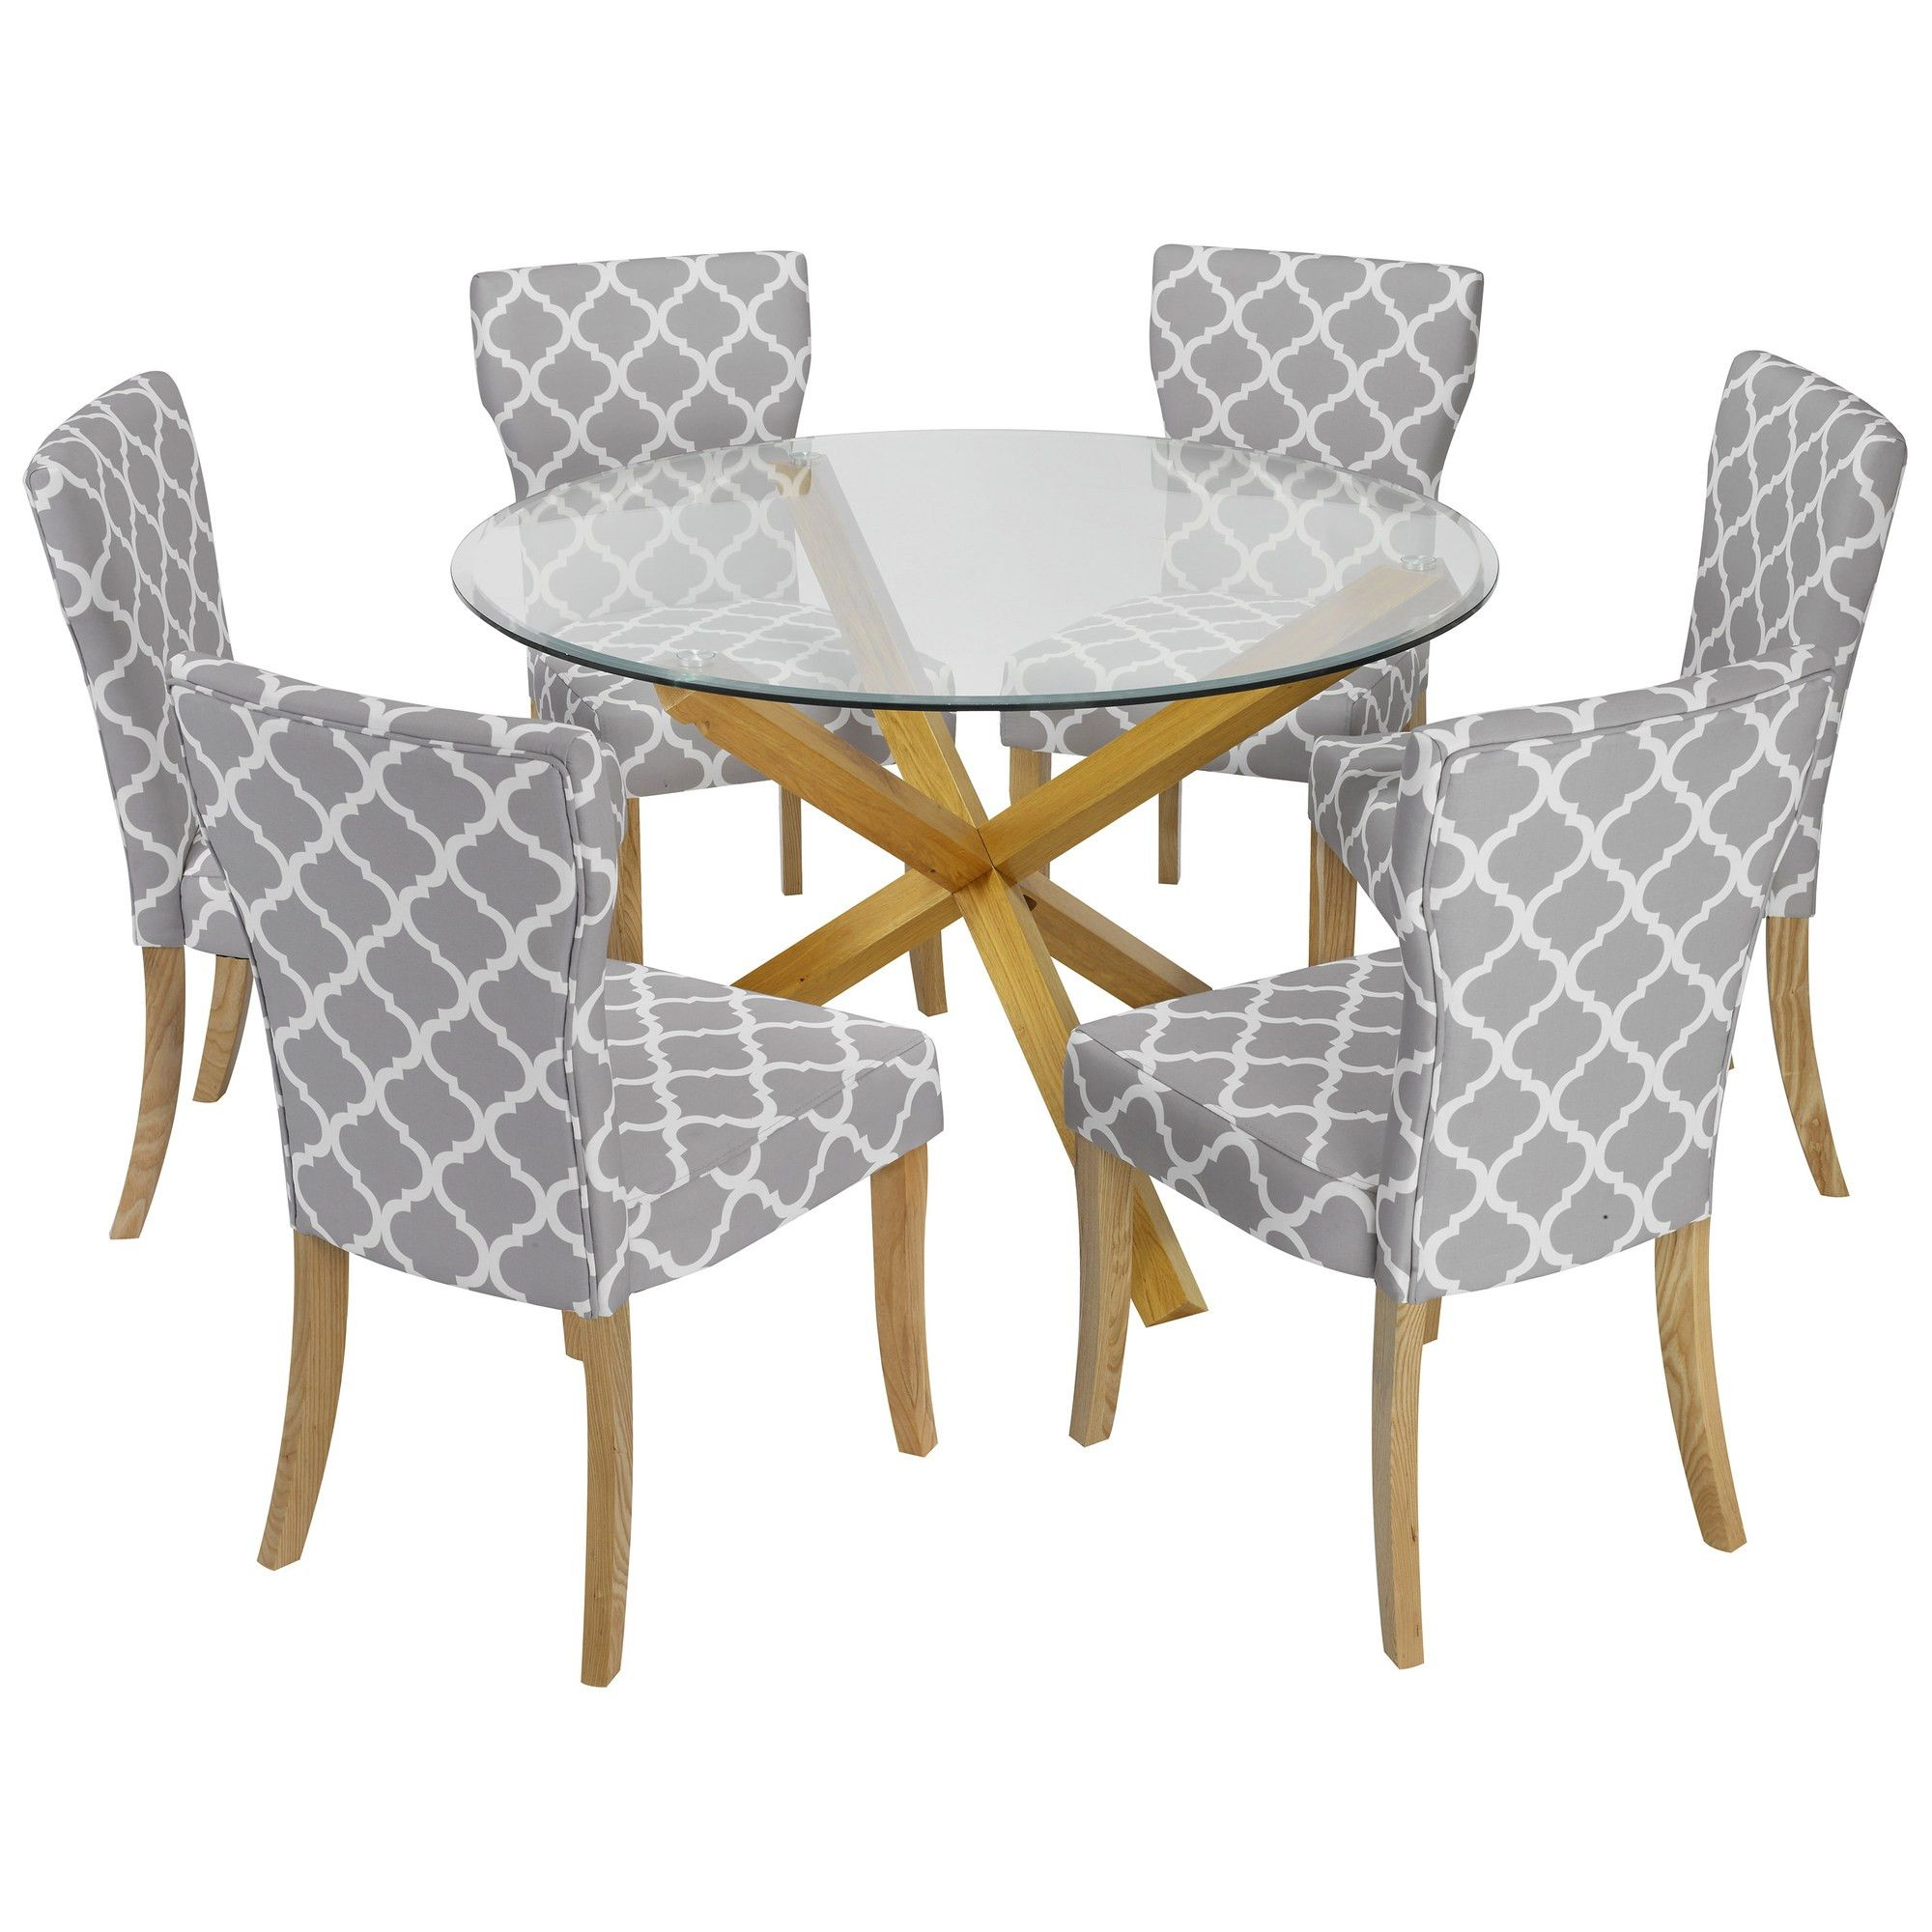 Solid oak u glass round dining table and chair set with grey